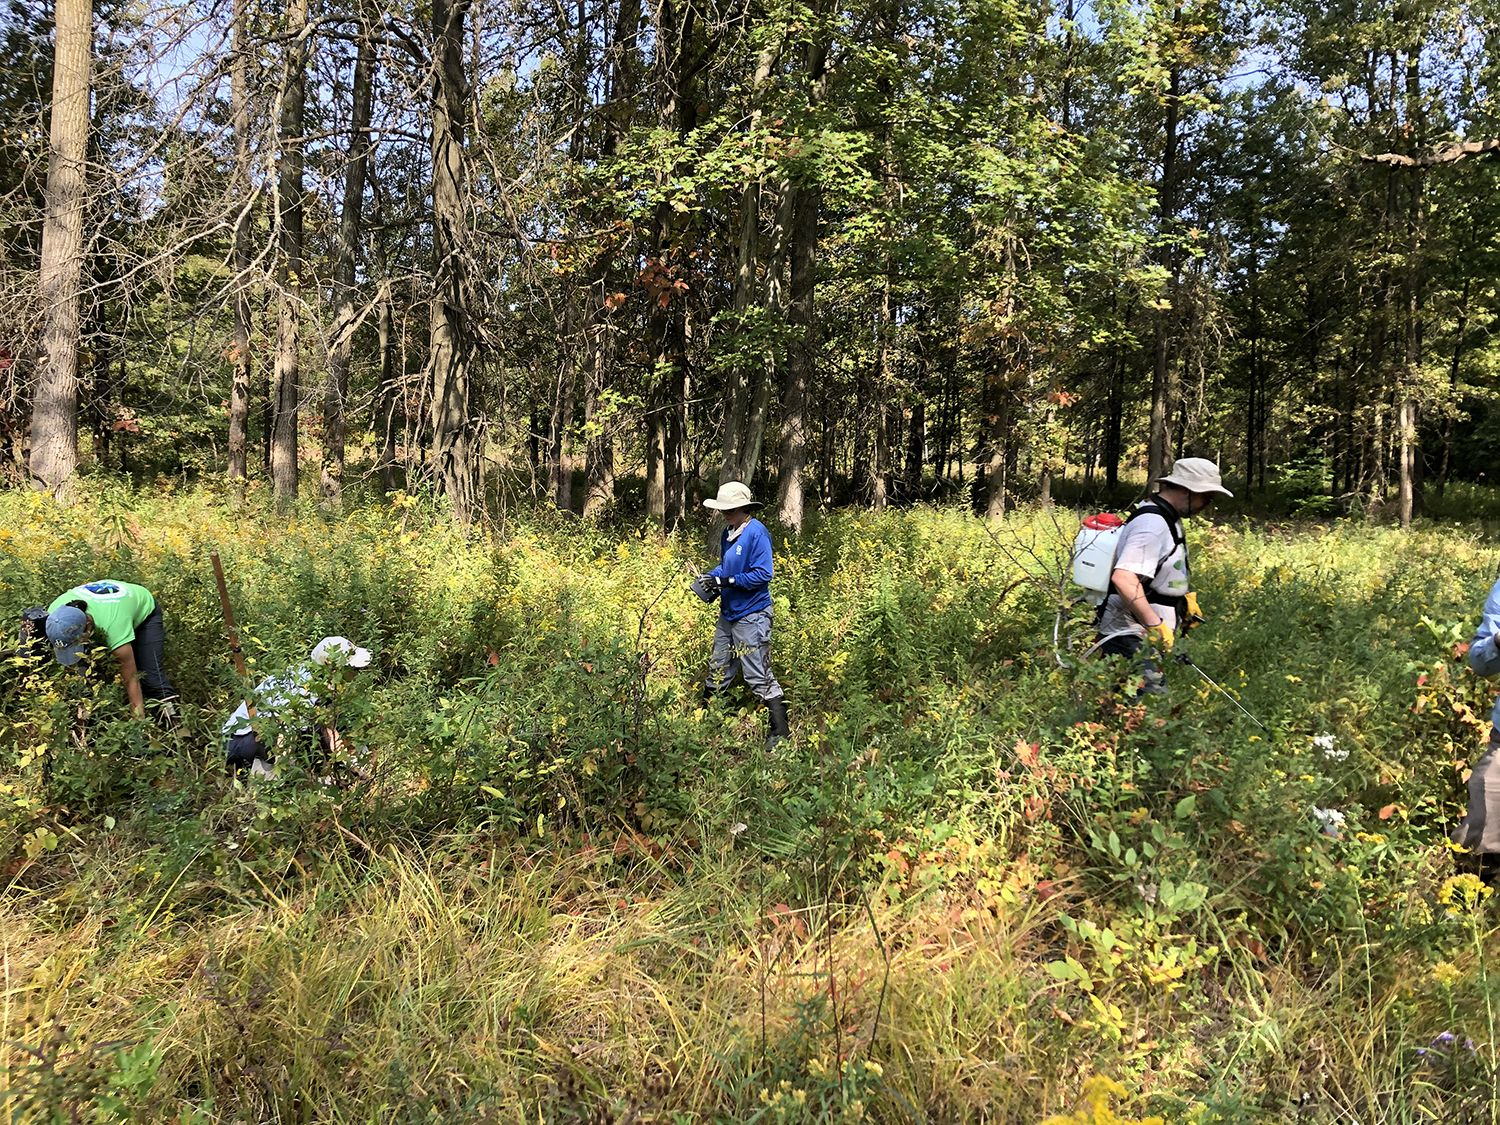 Four people, standing and crouching in a grassy field, placing native plants in the ground.